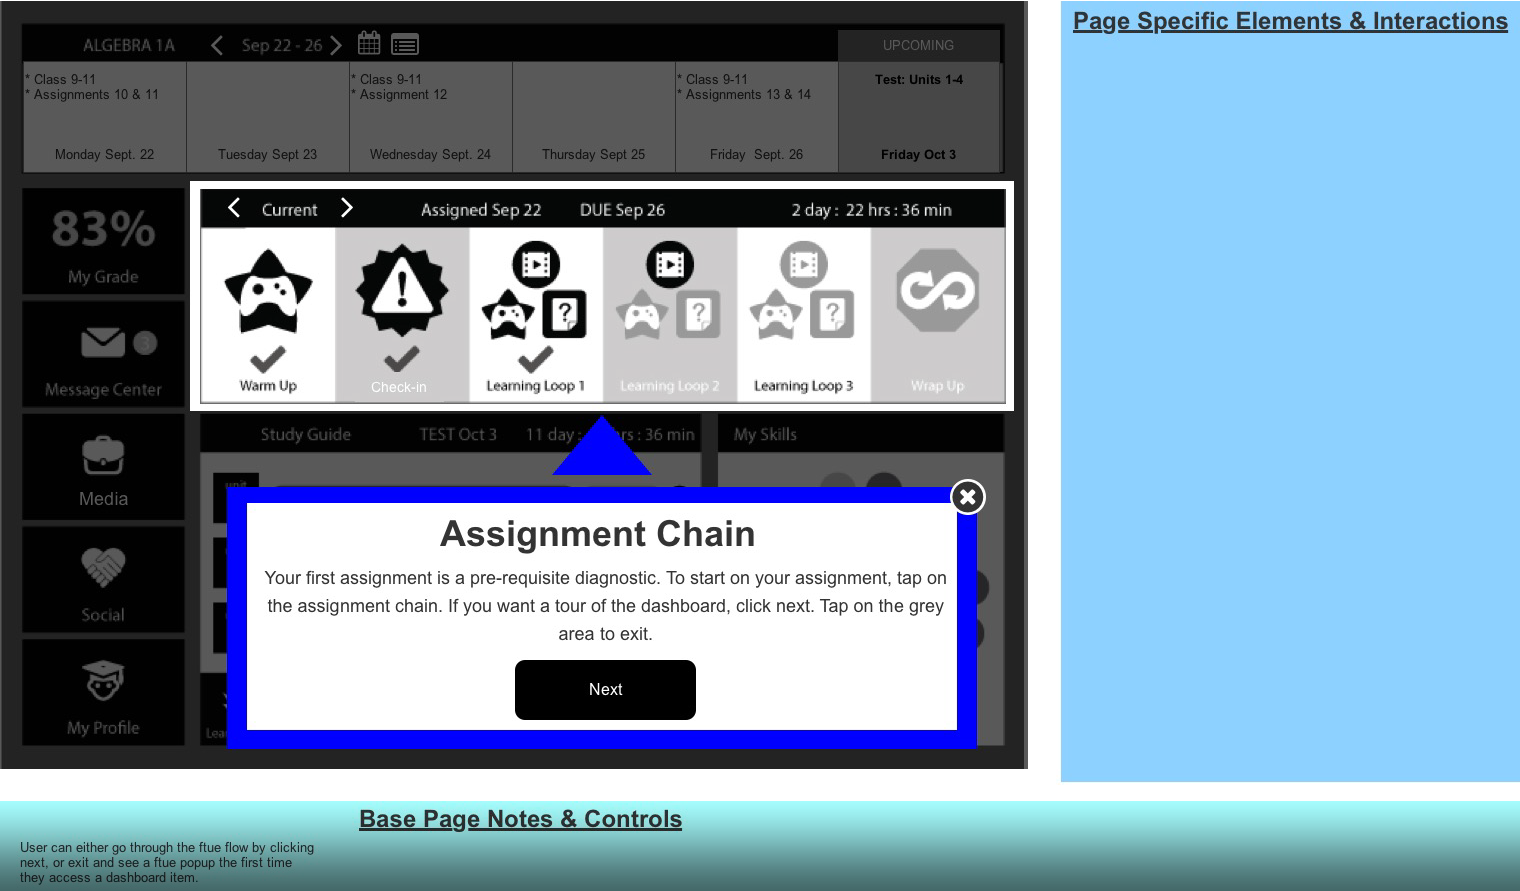 Assignment Chain